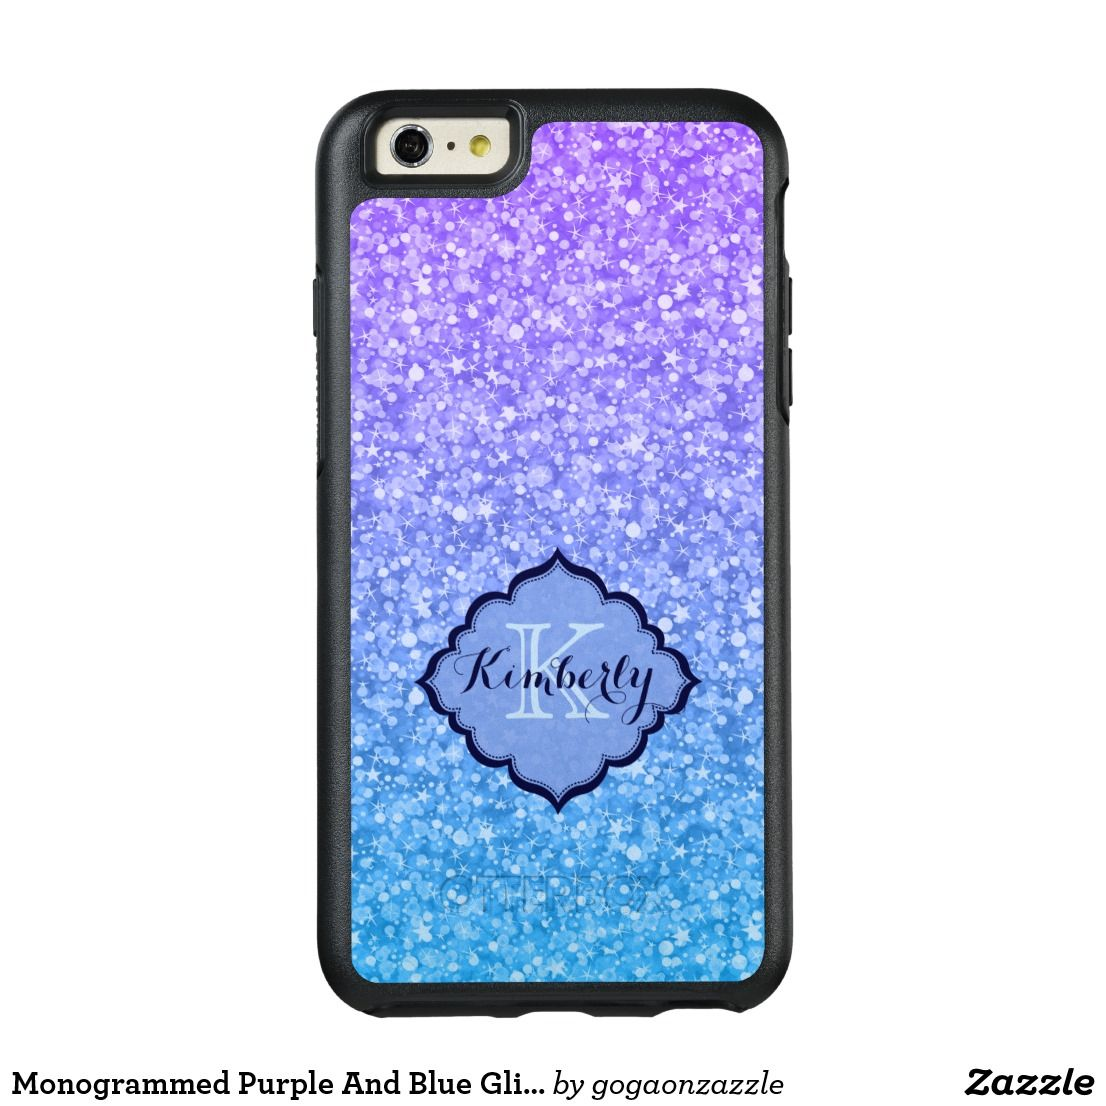 Monogrammed purple and blue glitter otterbox iphone case